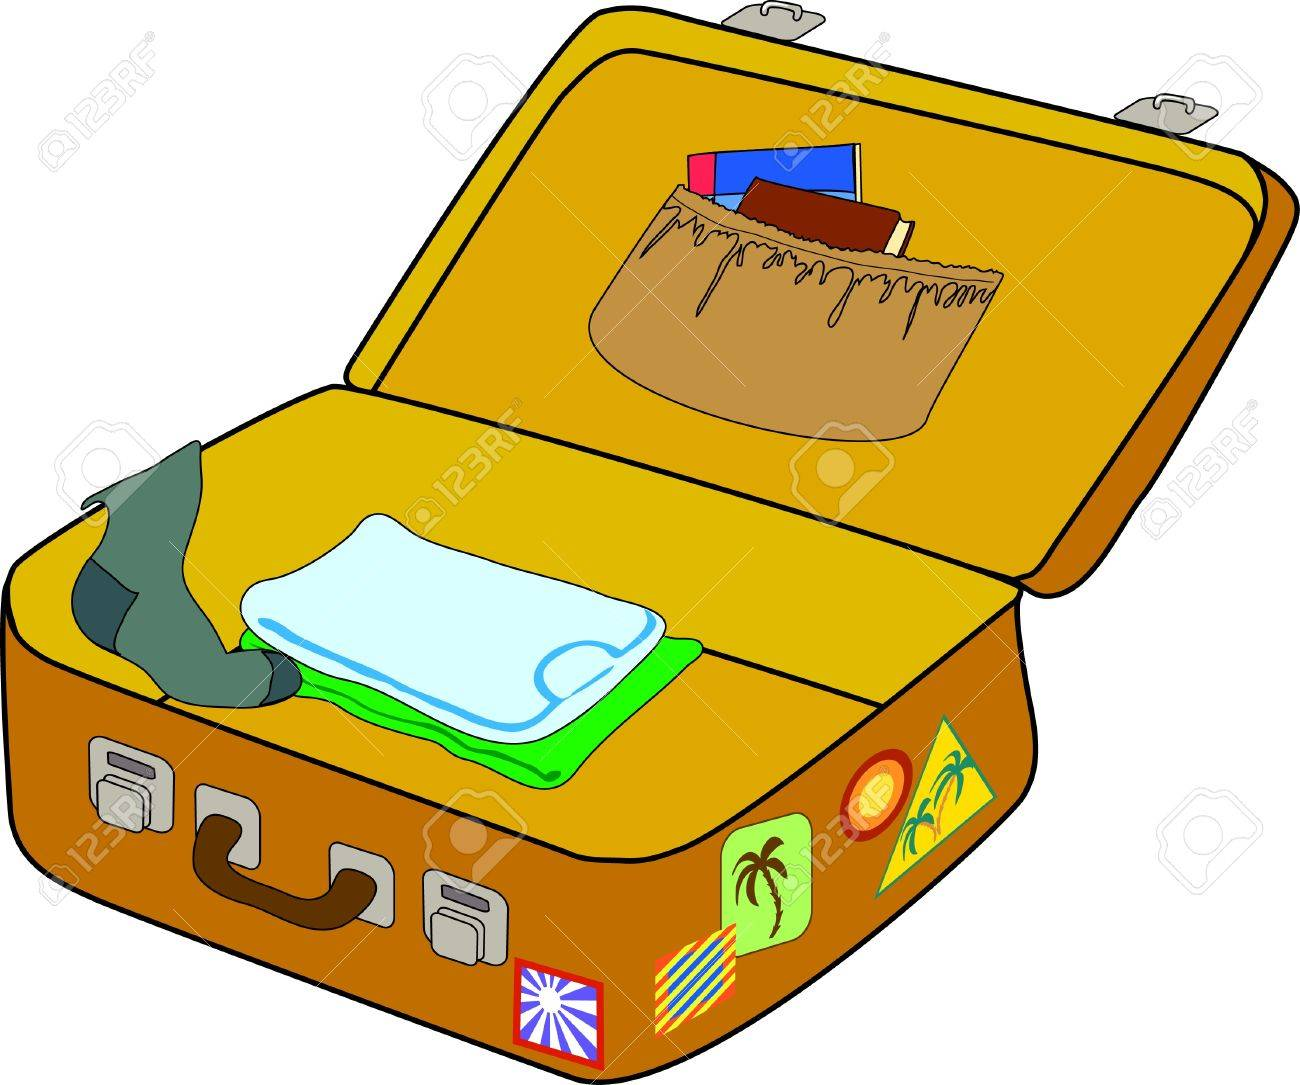 open suitcase drawing at getdrawings com free for personal use rh getdrawings com open suitcase images clipart